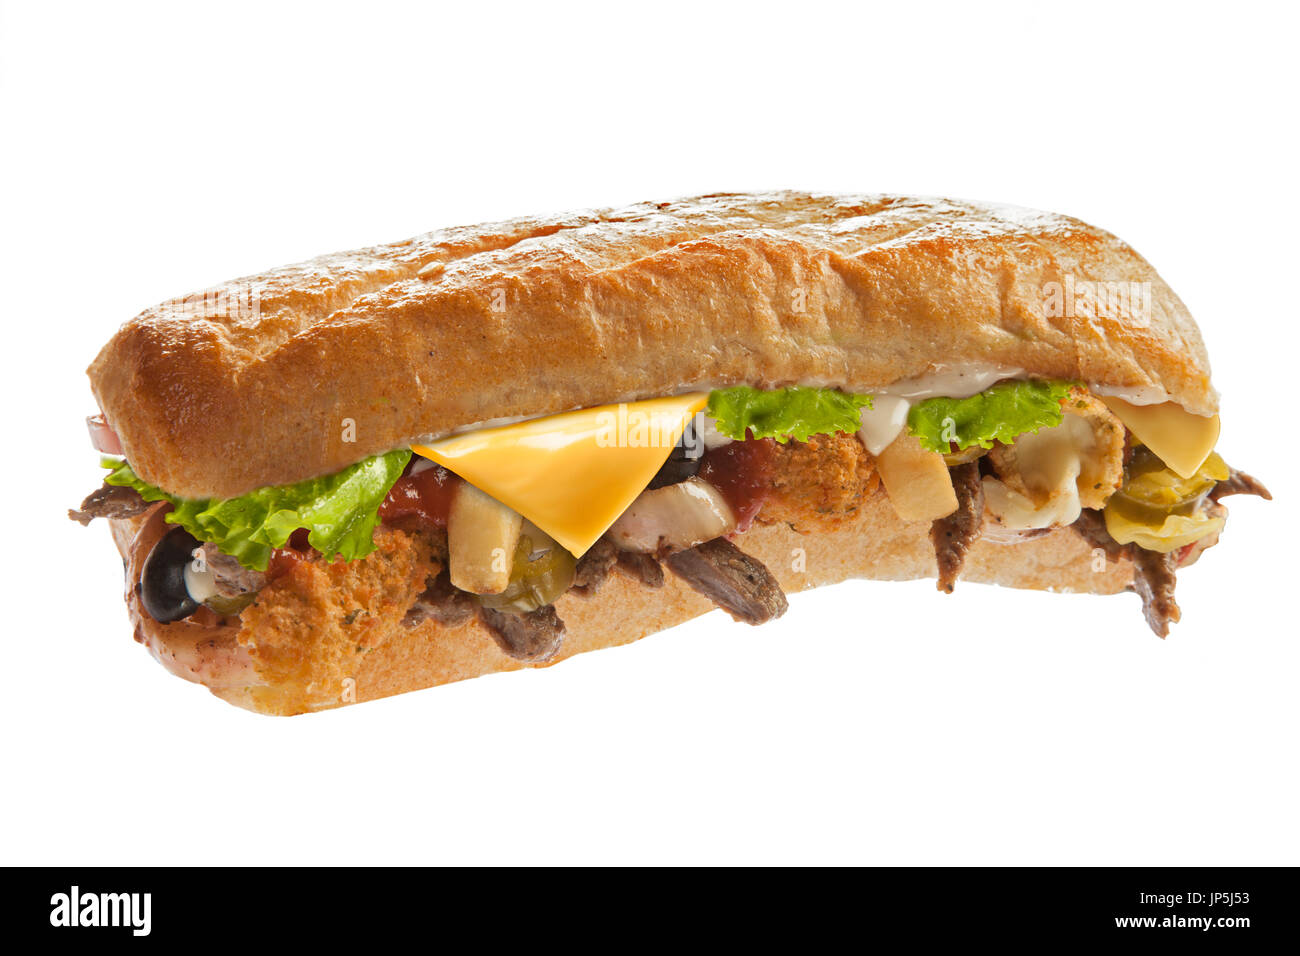 Mighty huge sub sandwich hoagie filled with veggies and meat - Stock Image